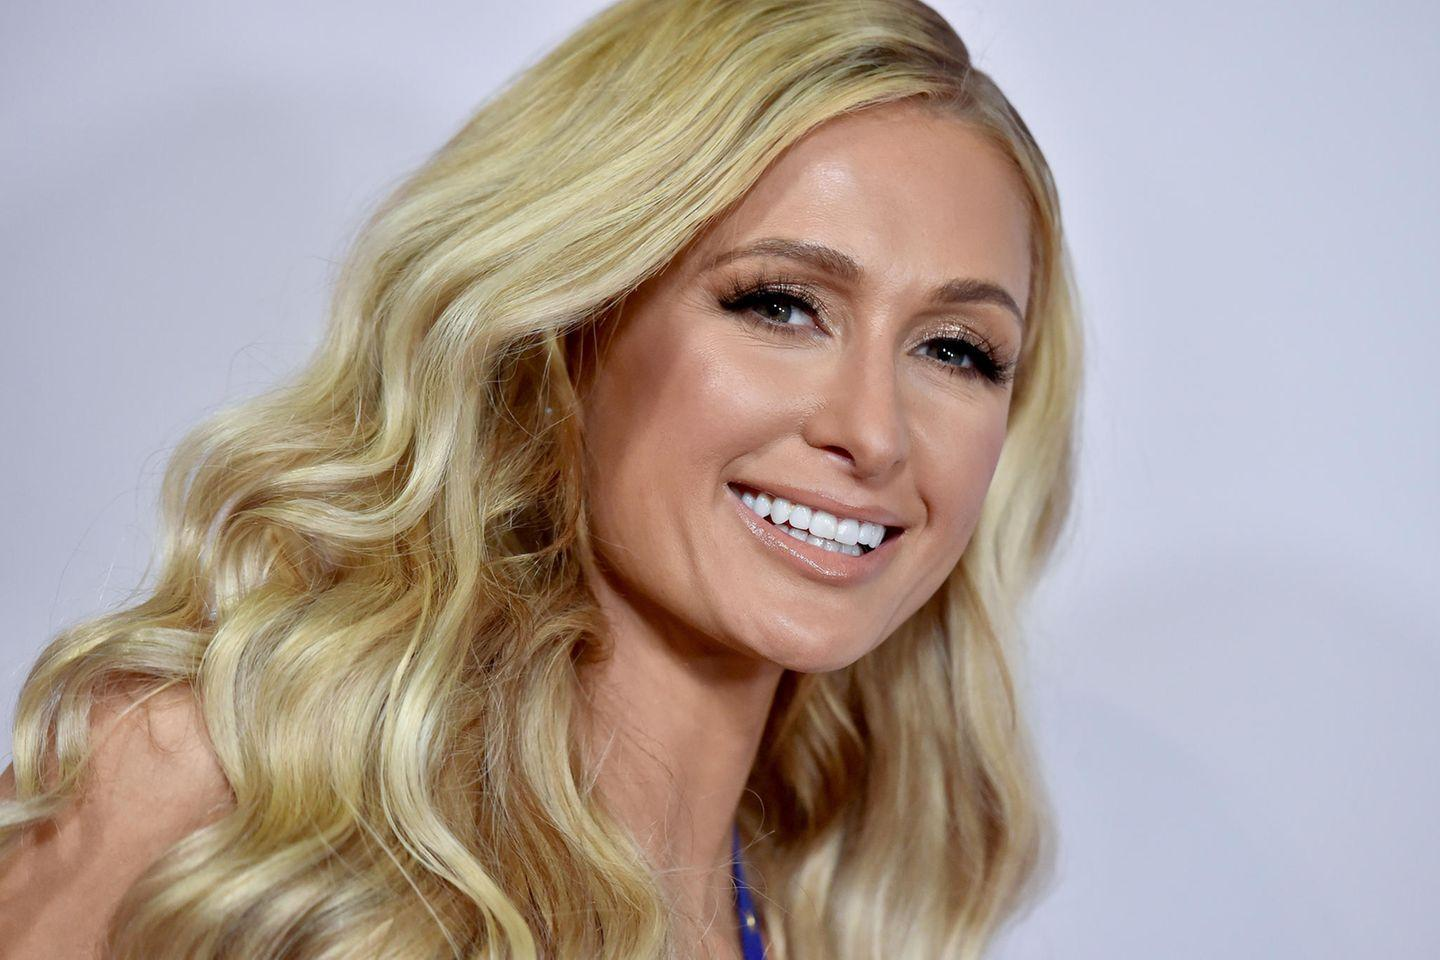 Paris Hilton Addresses Those Pregnancy Reports - Is She Going To Be A Mom Soon?